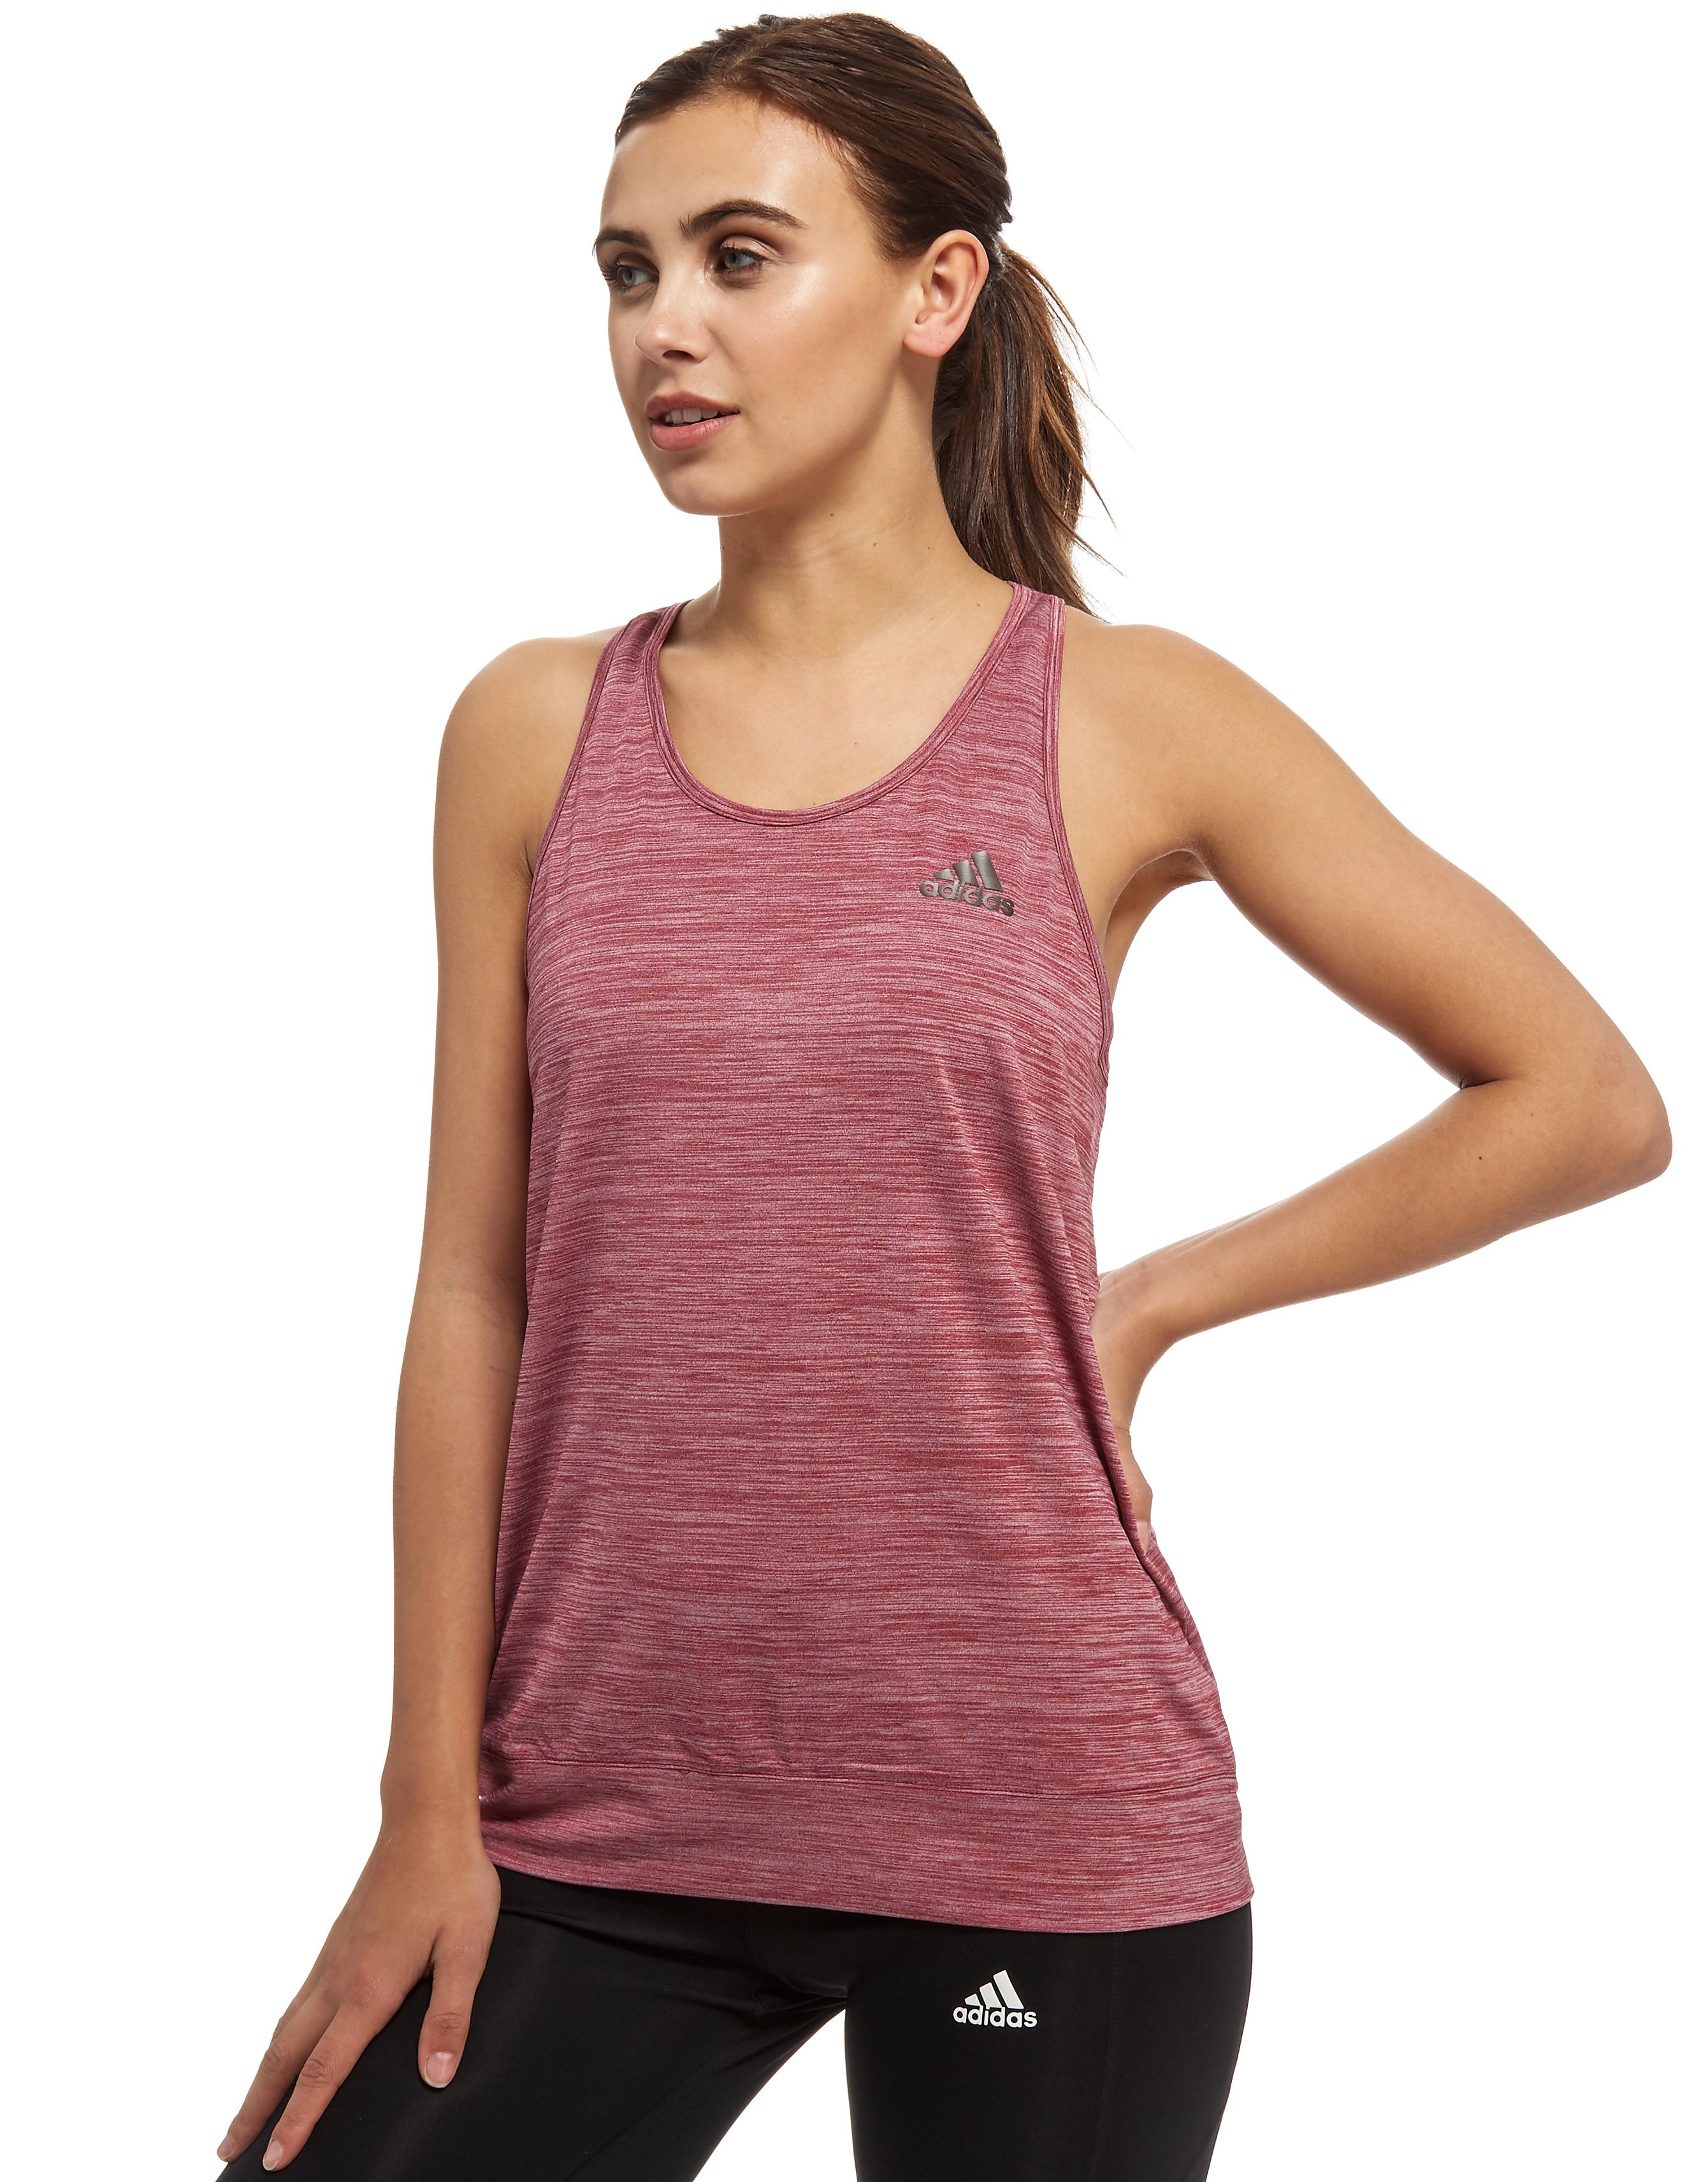 adidas Performer Banded Tank Top